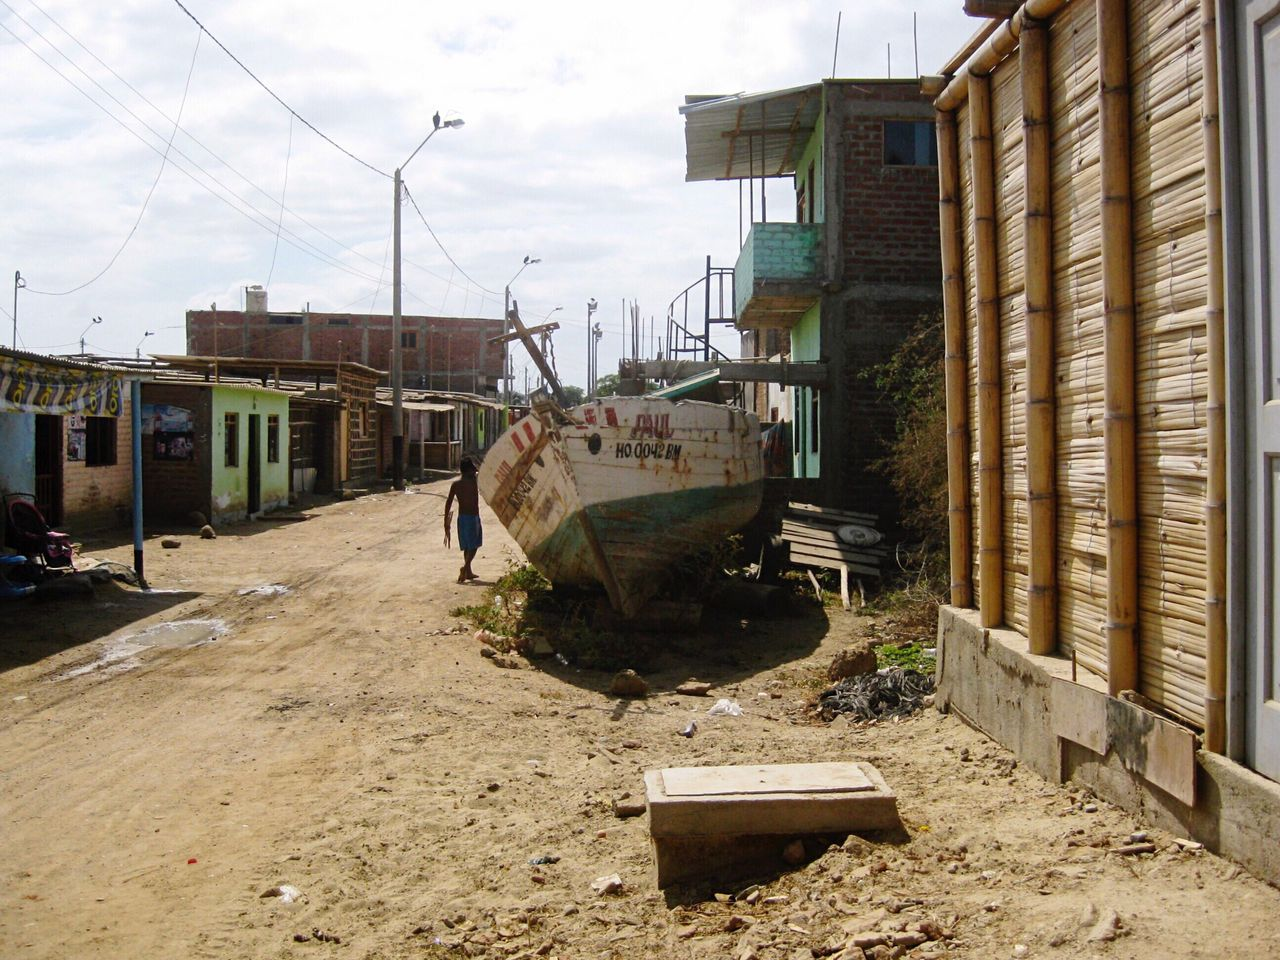 After the flood Live For The Story The Street Photographer - 2017 EyeEm Awards The Photojournalist - 2017 EyeEm Awards Streetphotography Built Structure Architecture Damaged Destruction Day Outdoors Boat Scenics Daily Life in Mancora , Peru